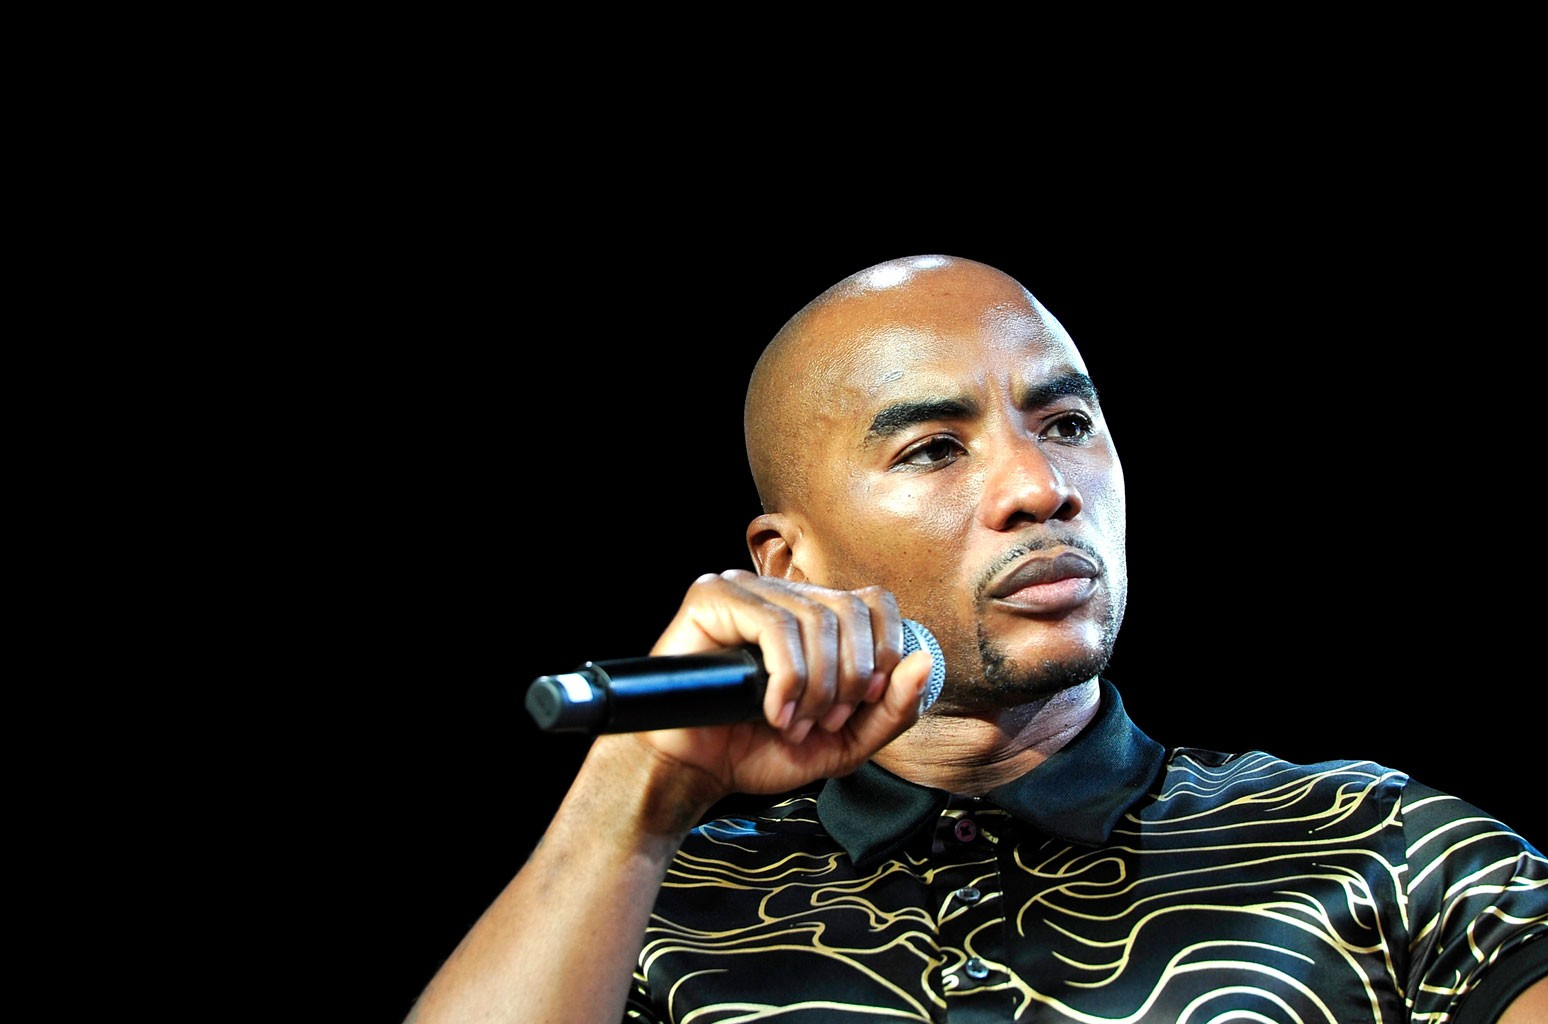 Charlamagne Tha God to Co-Host Audible Original Discussing Race in America